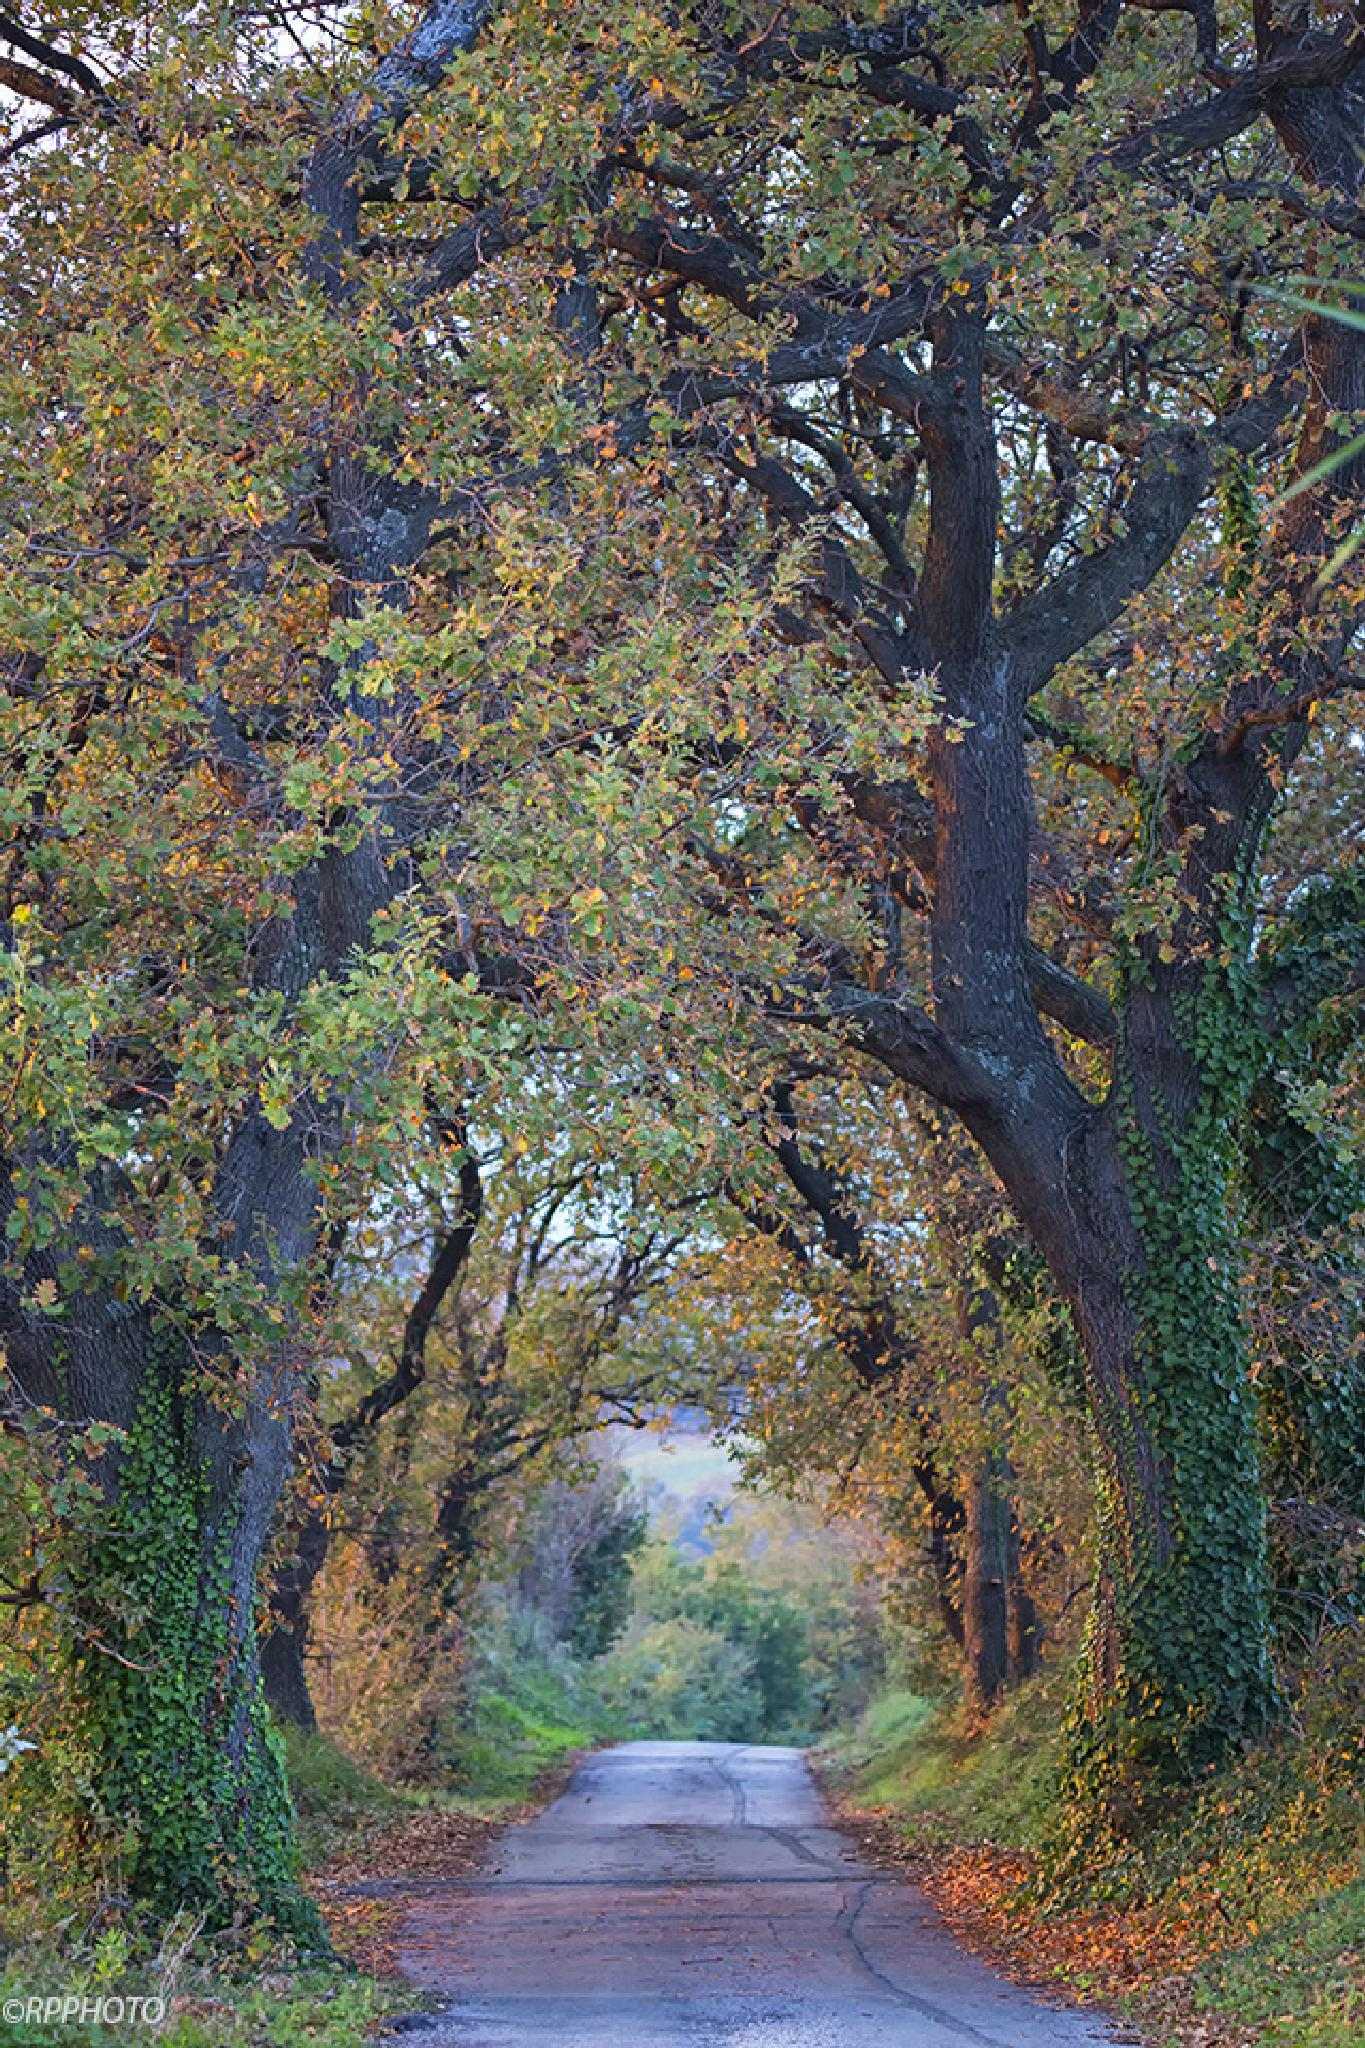 Gallery autumn. by RPphoto